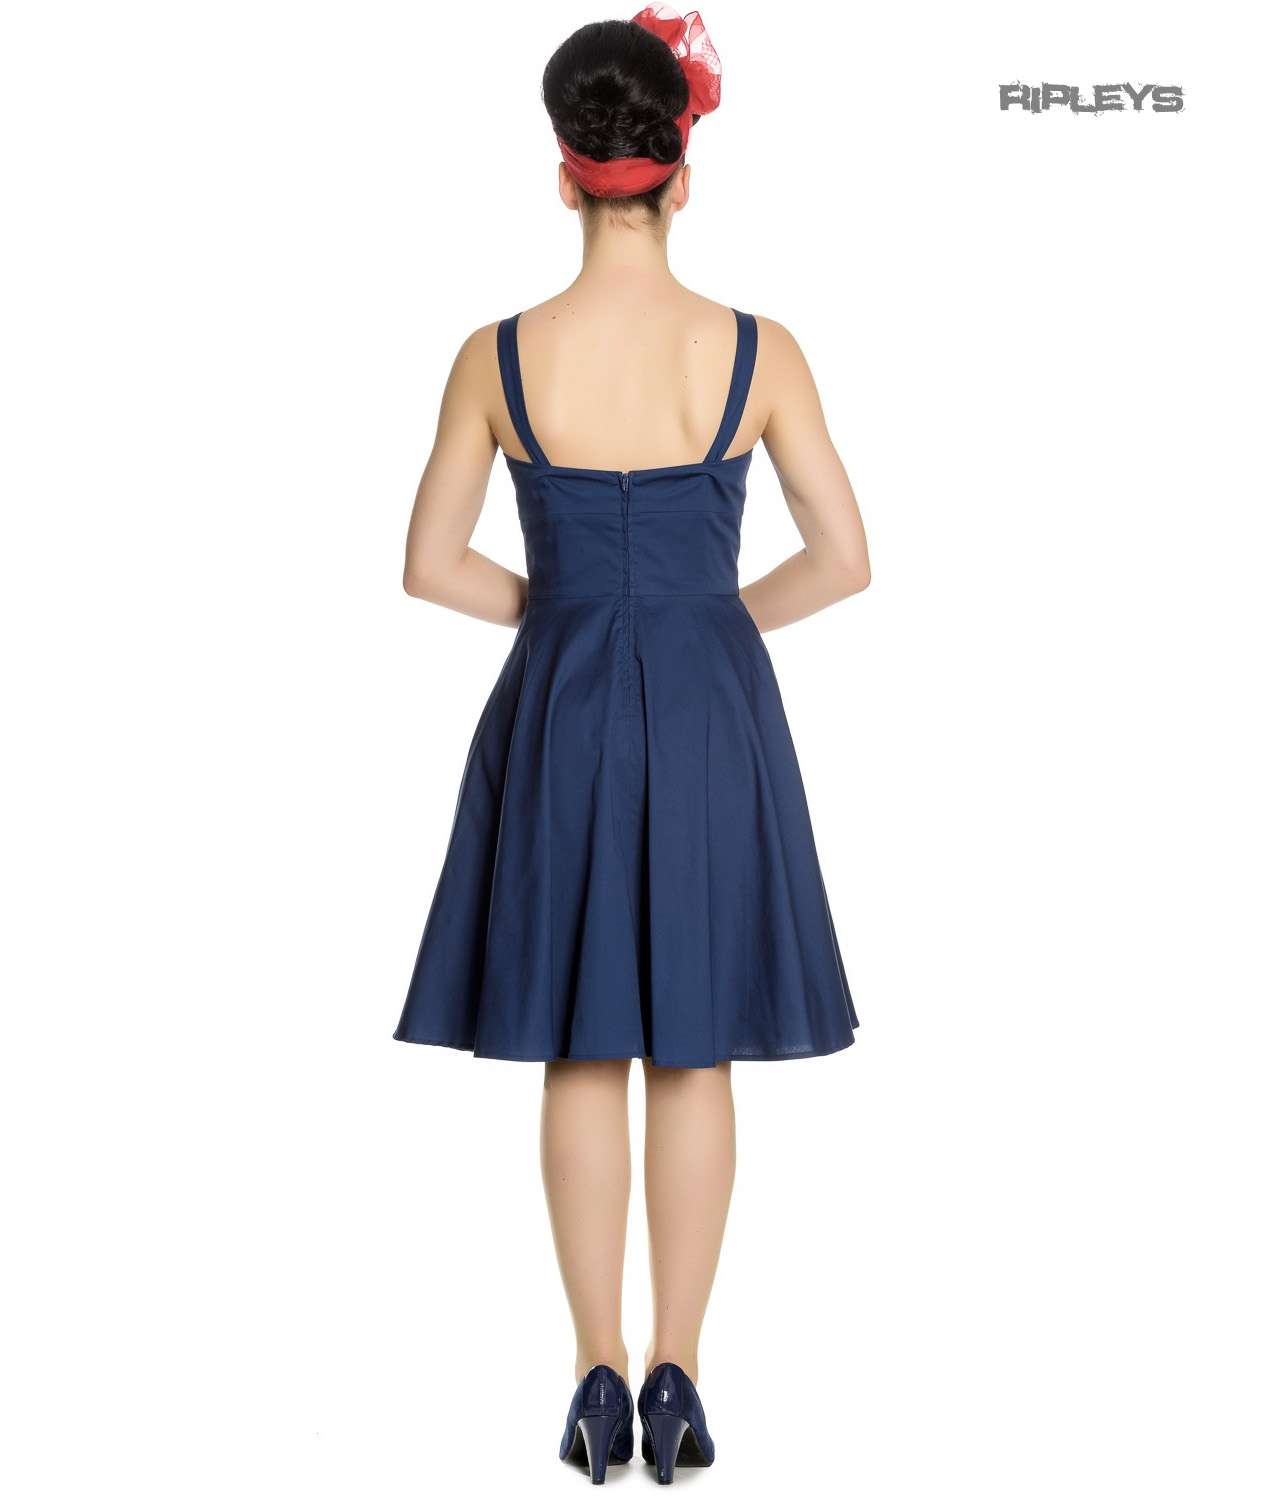 Hell-Bunny-Vintage-50s-Pin-Up-Dress-Navy-Blue-SELA-Nautical-Anchors-All-Sizes thumbnail 28